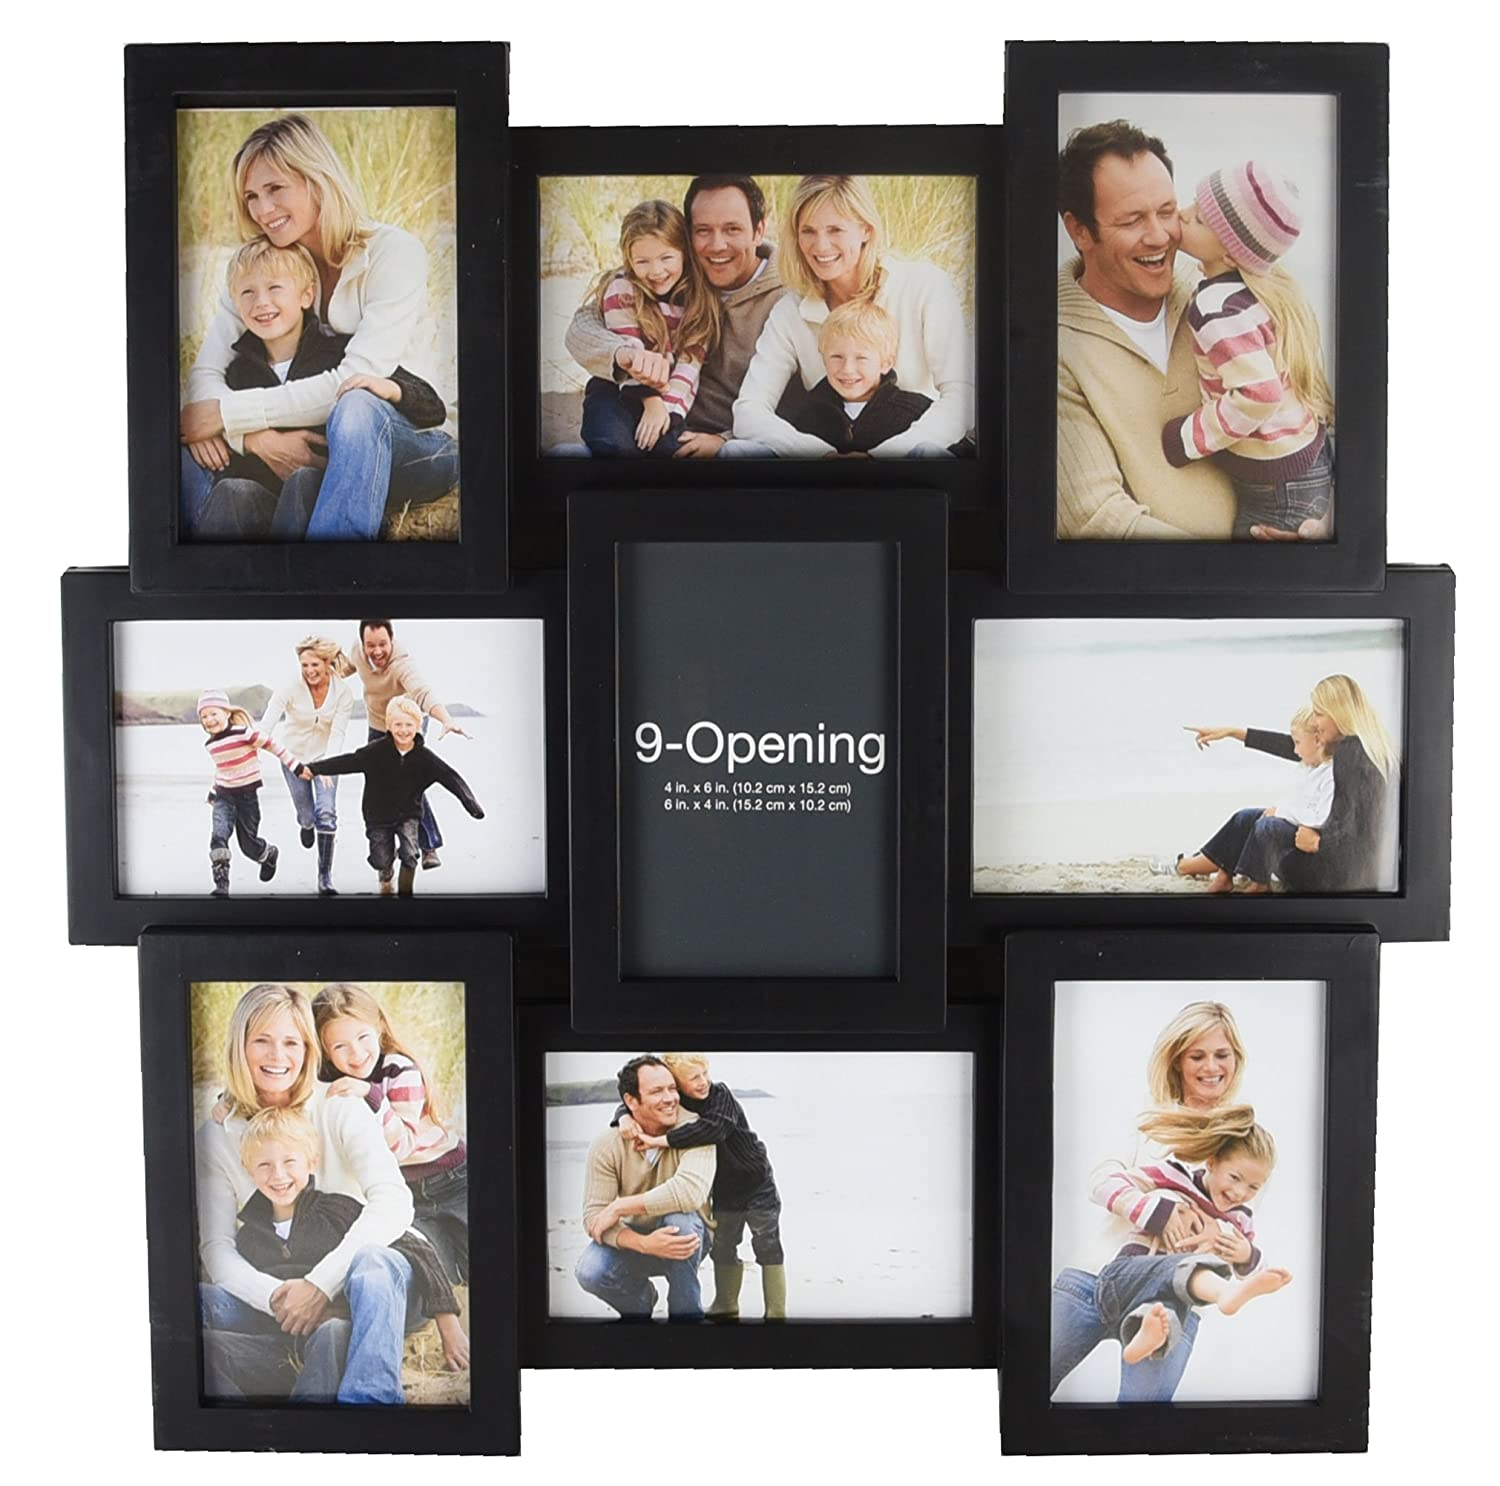 Amazon.com: Melannco 9-Opening Puzzle Collage Picture Frame, Black ...